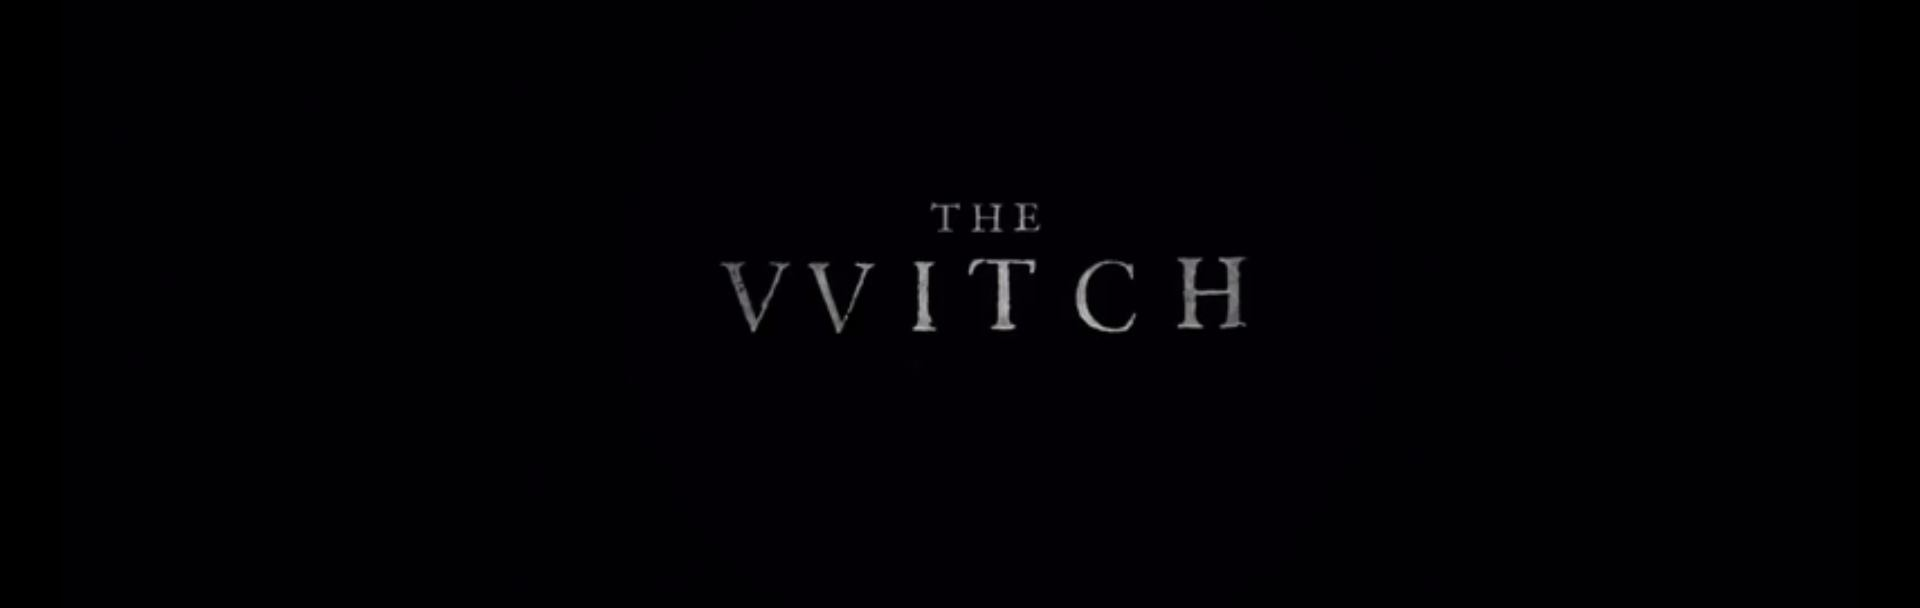 VIDEO: Najave i intervjui za film 'The Witch'